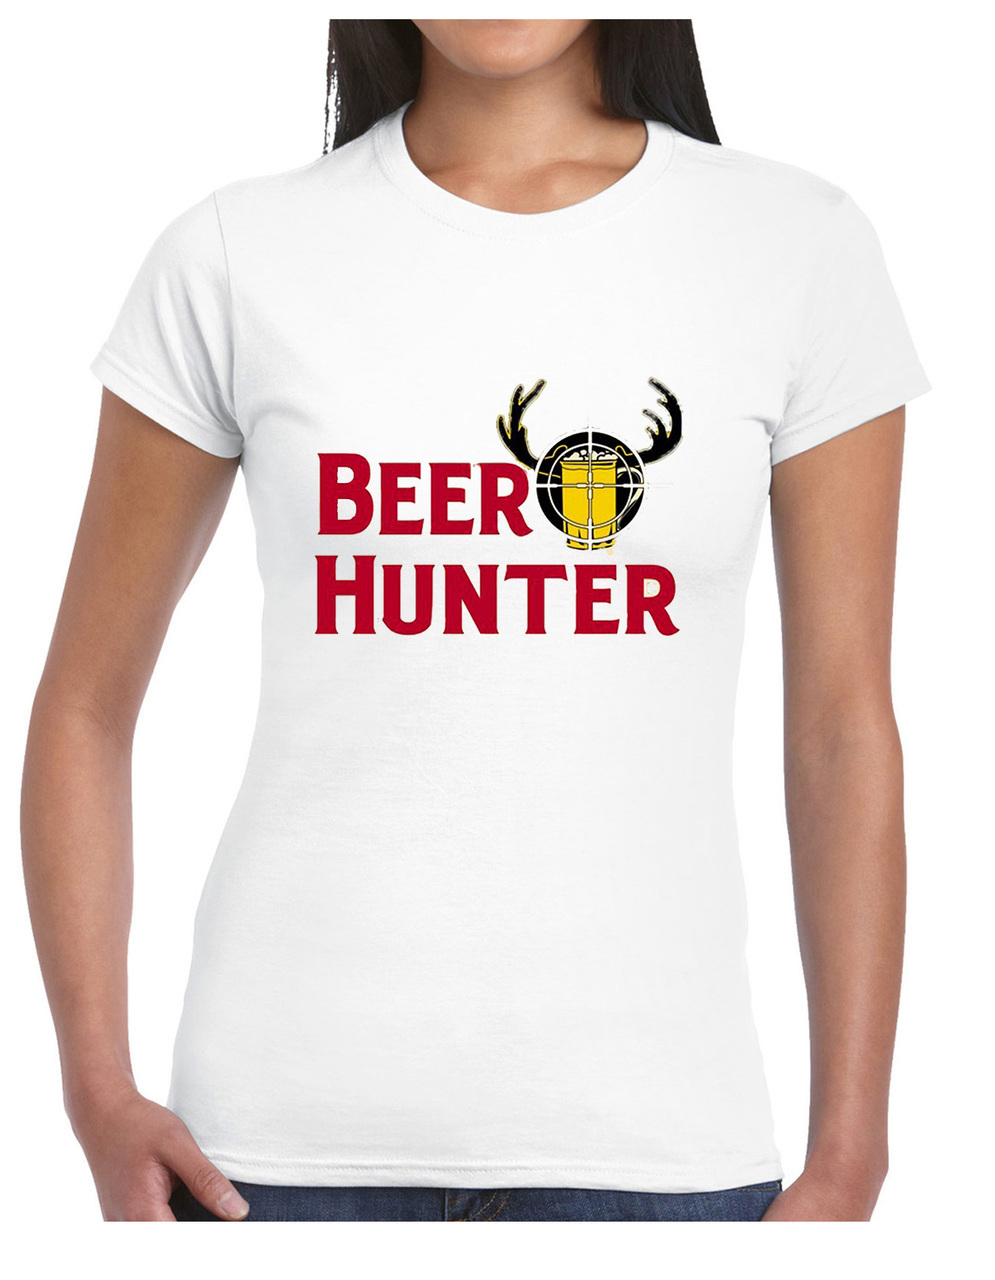 Beer Hunter Women's Short Sleeve T-Shirt